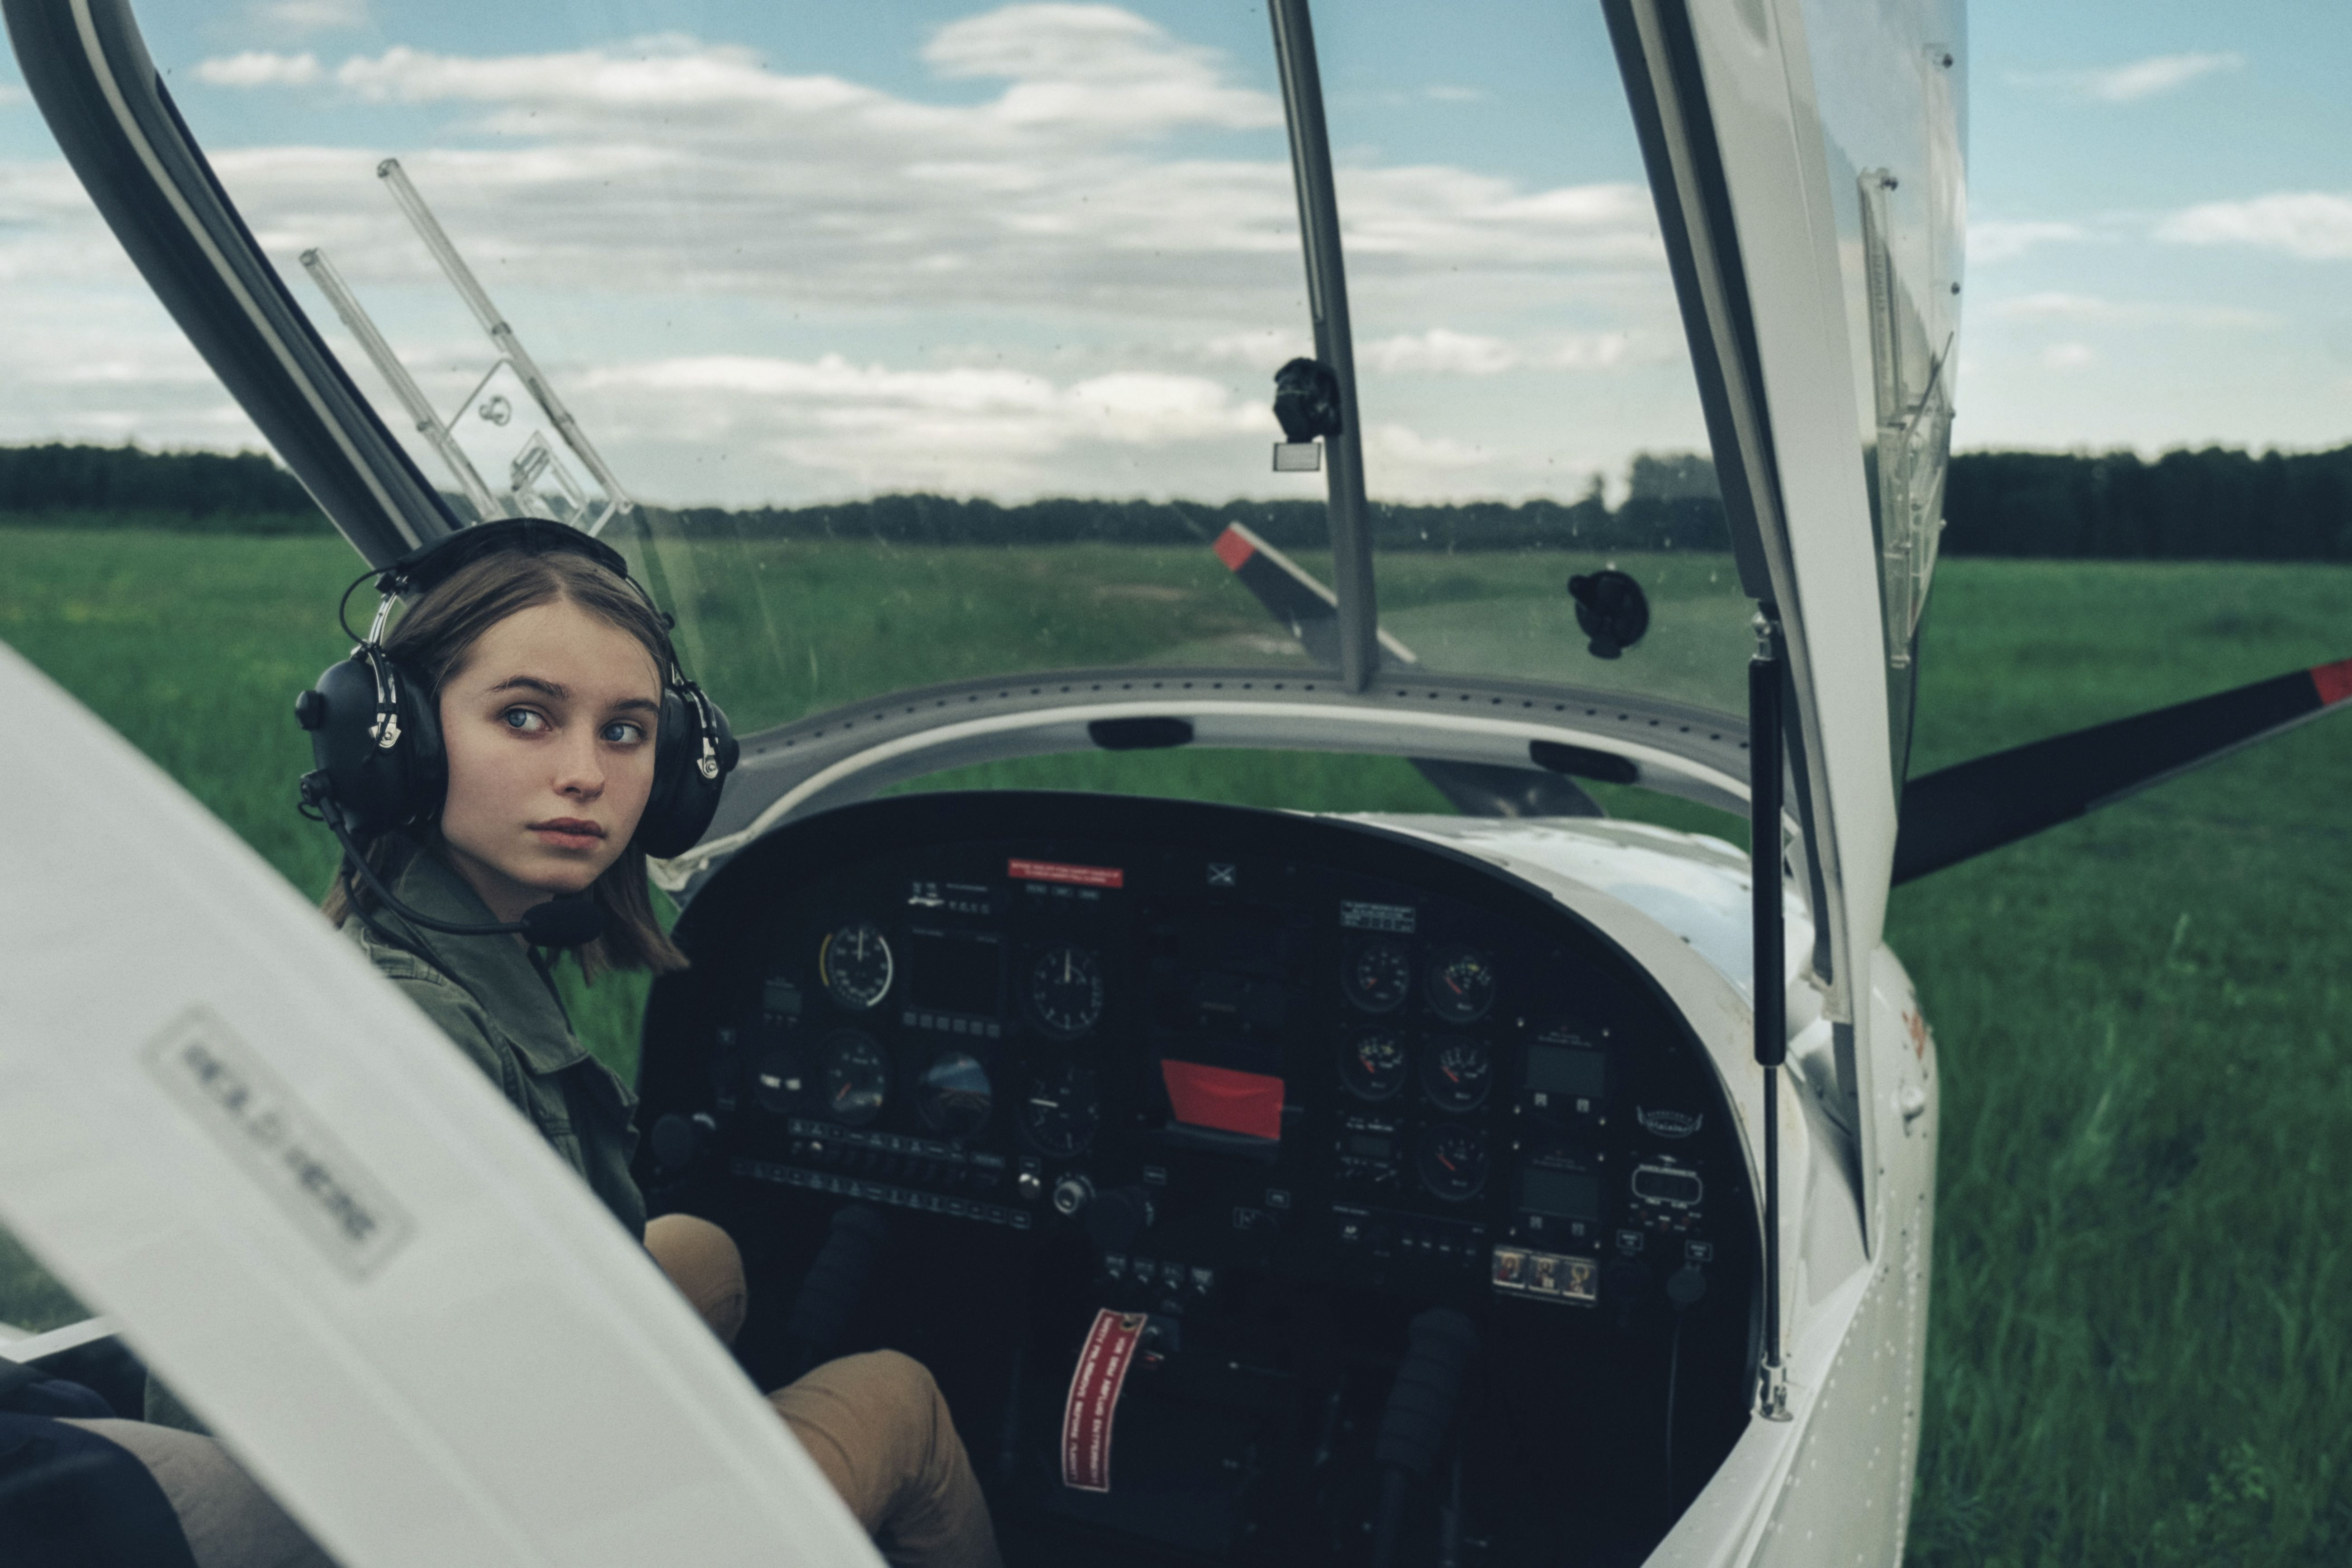 How Much Does A Private Pilot License Cost